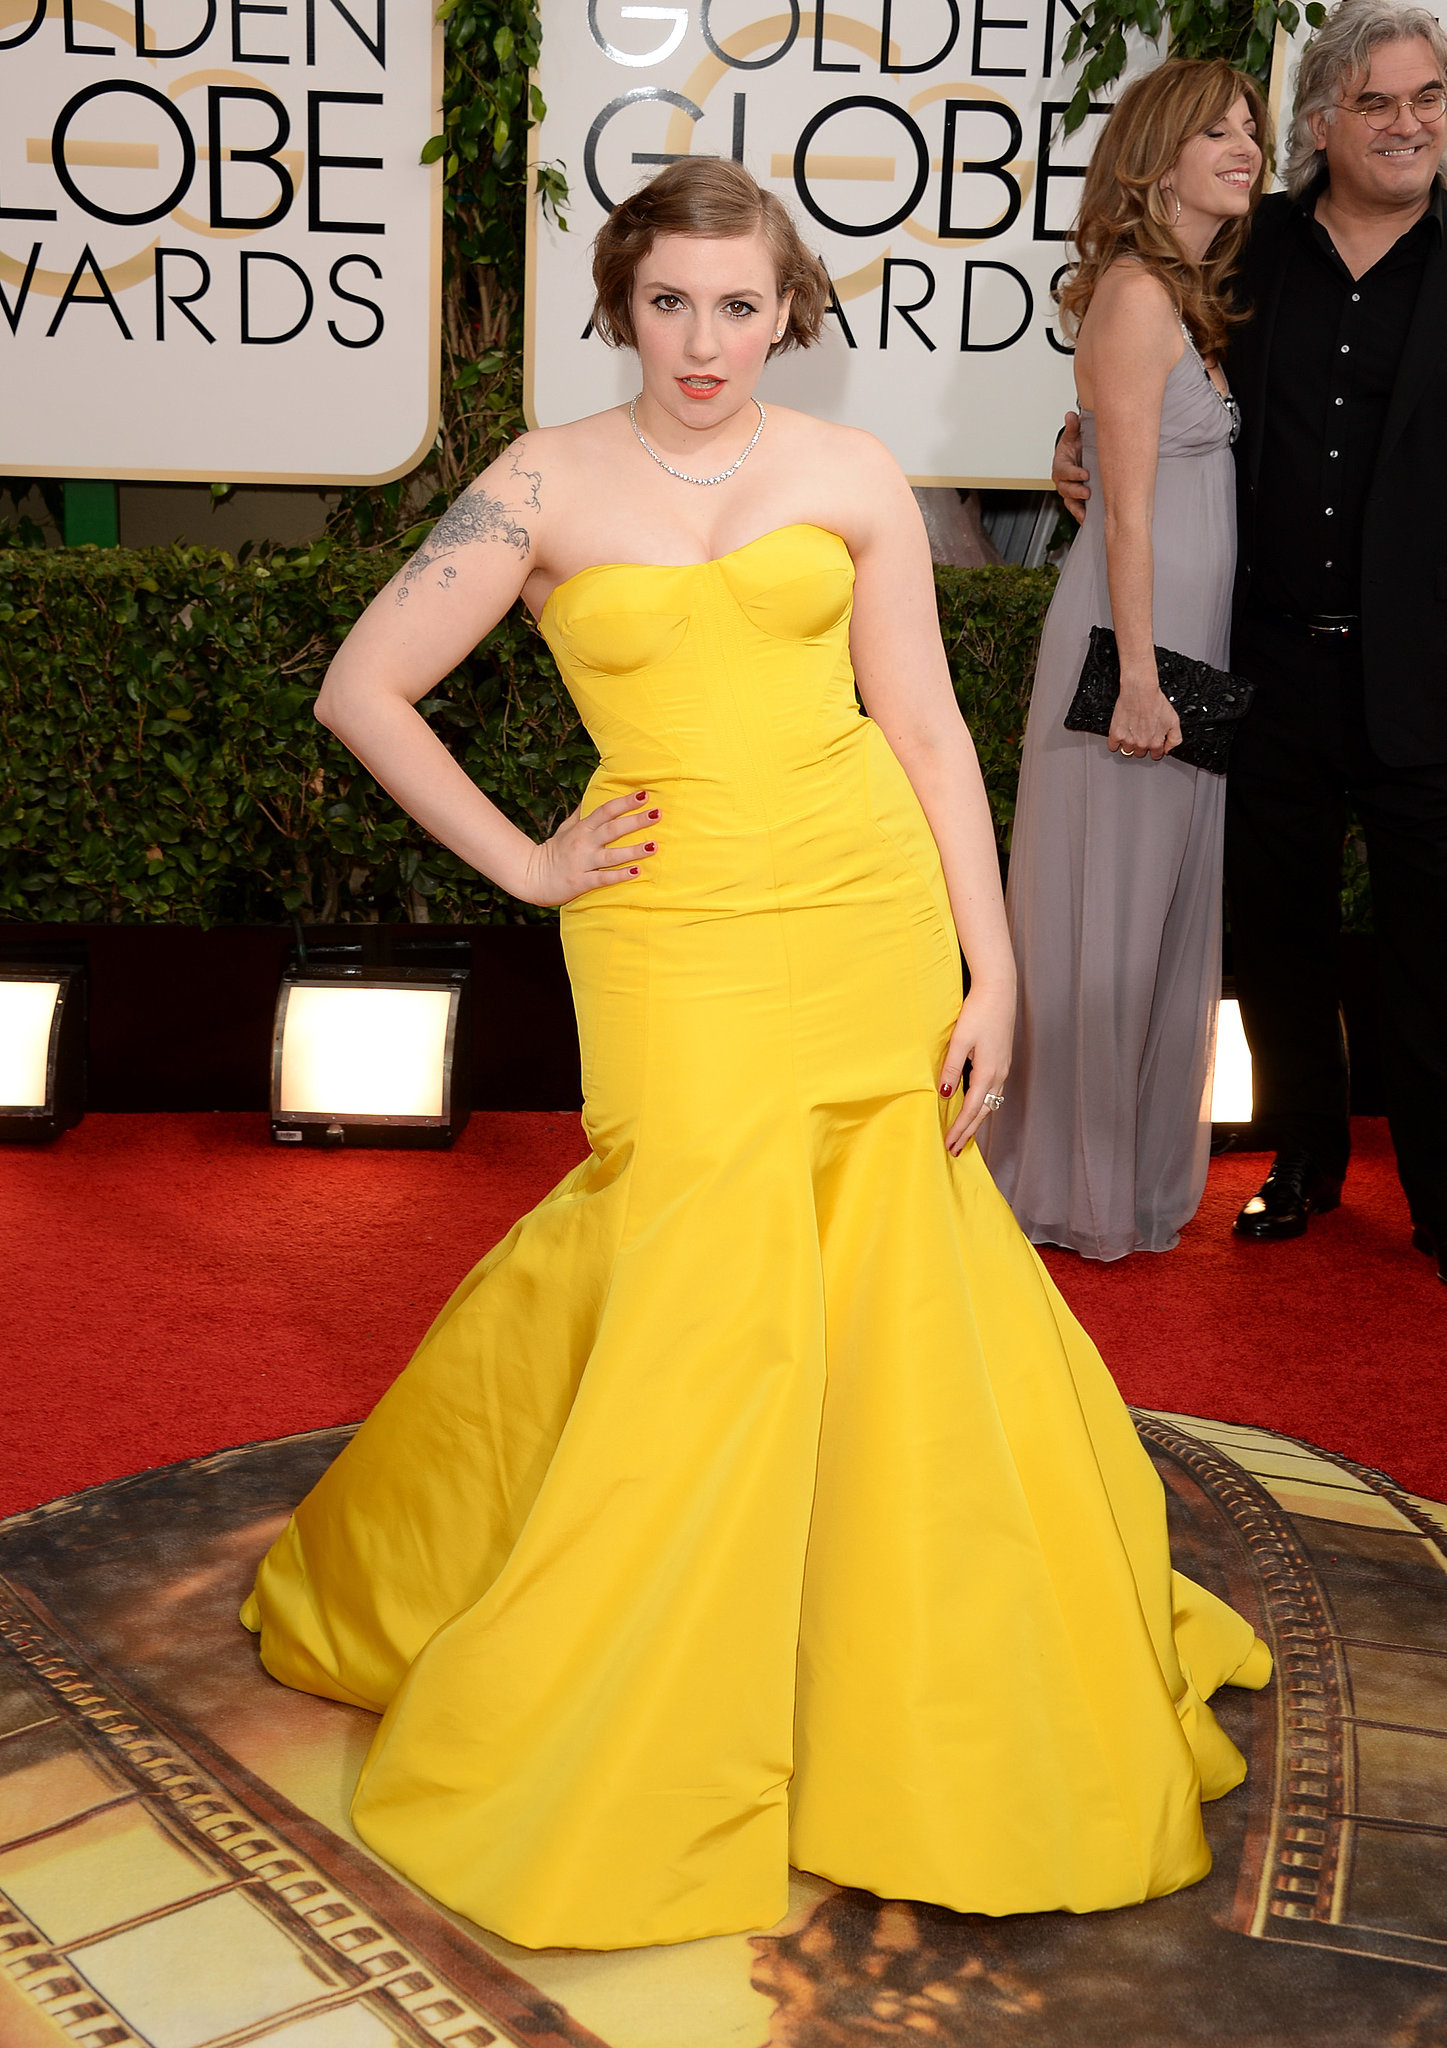 Lena Dunham looked stunning in a bright yellow Zac Posen dress at